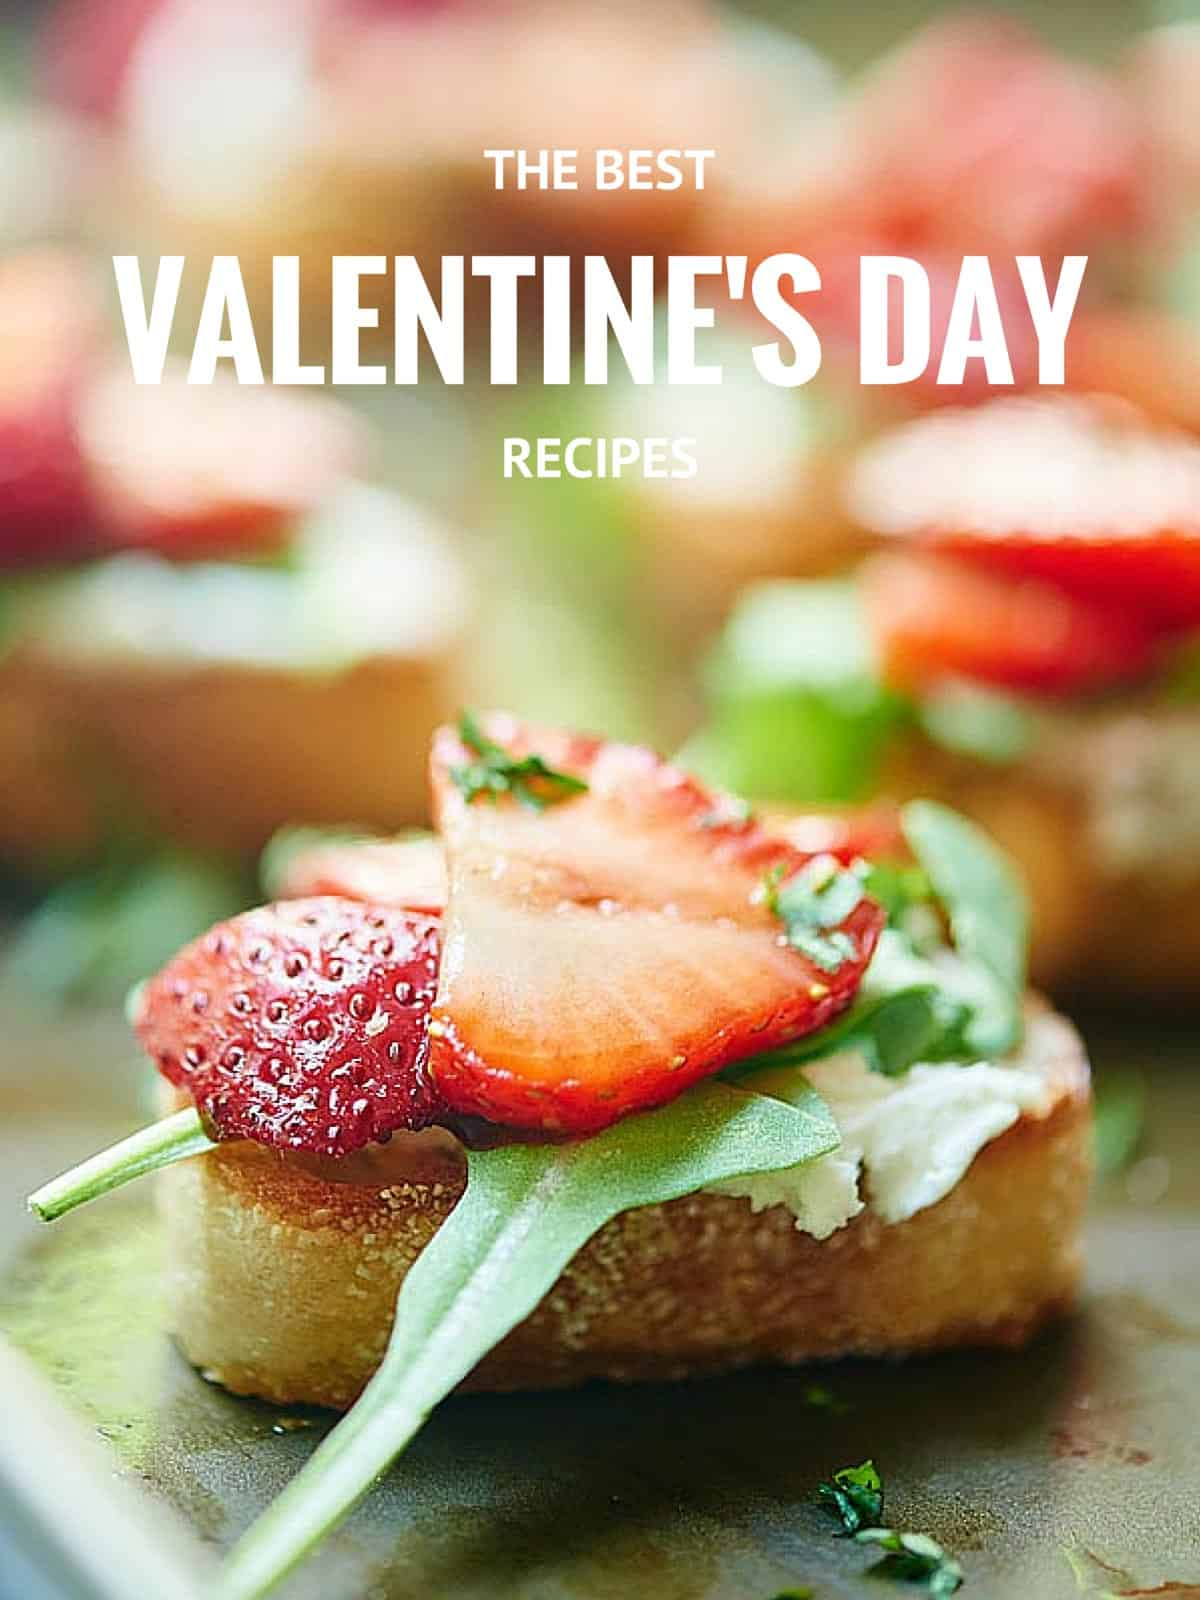 Valentine's Day Recipes for 2016! Everything from romantic bruschetta appetizers, pasta main dishes, chocolate desserts, and cocktails! Love is in the air! showmetheyummy.com #valentinesday #valentinesdayrecipes